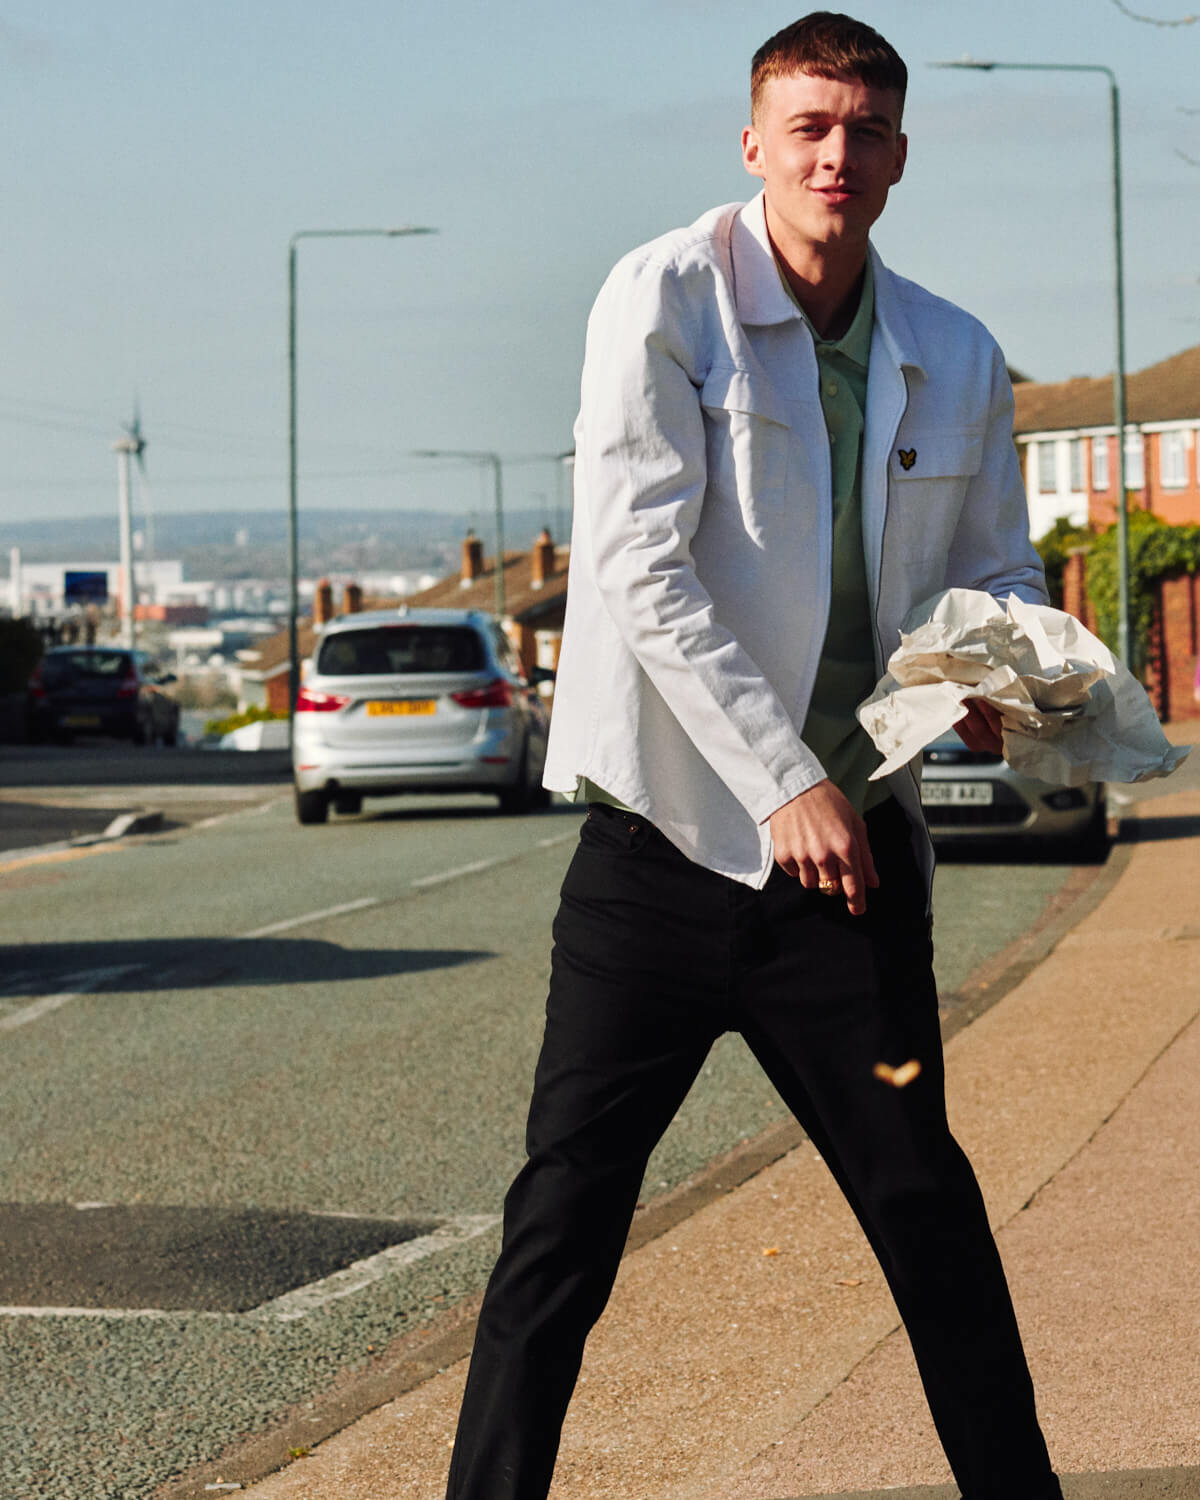 Lad in  eats chips in the street, by lifestyle photographer Tim Cole